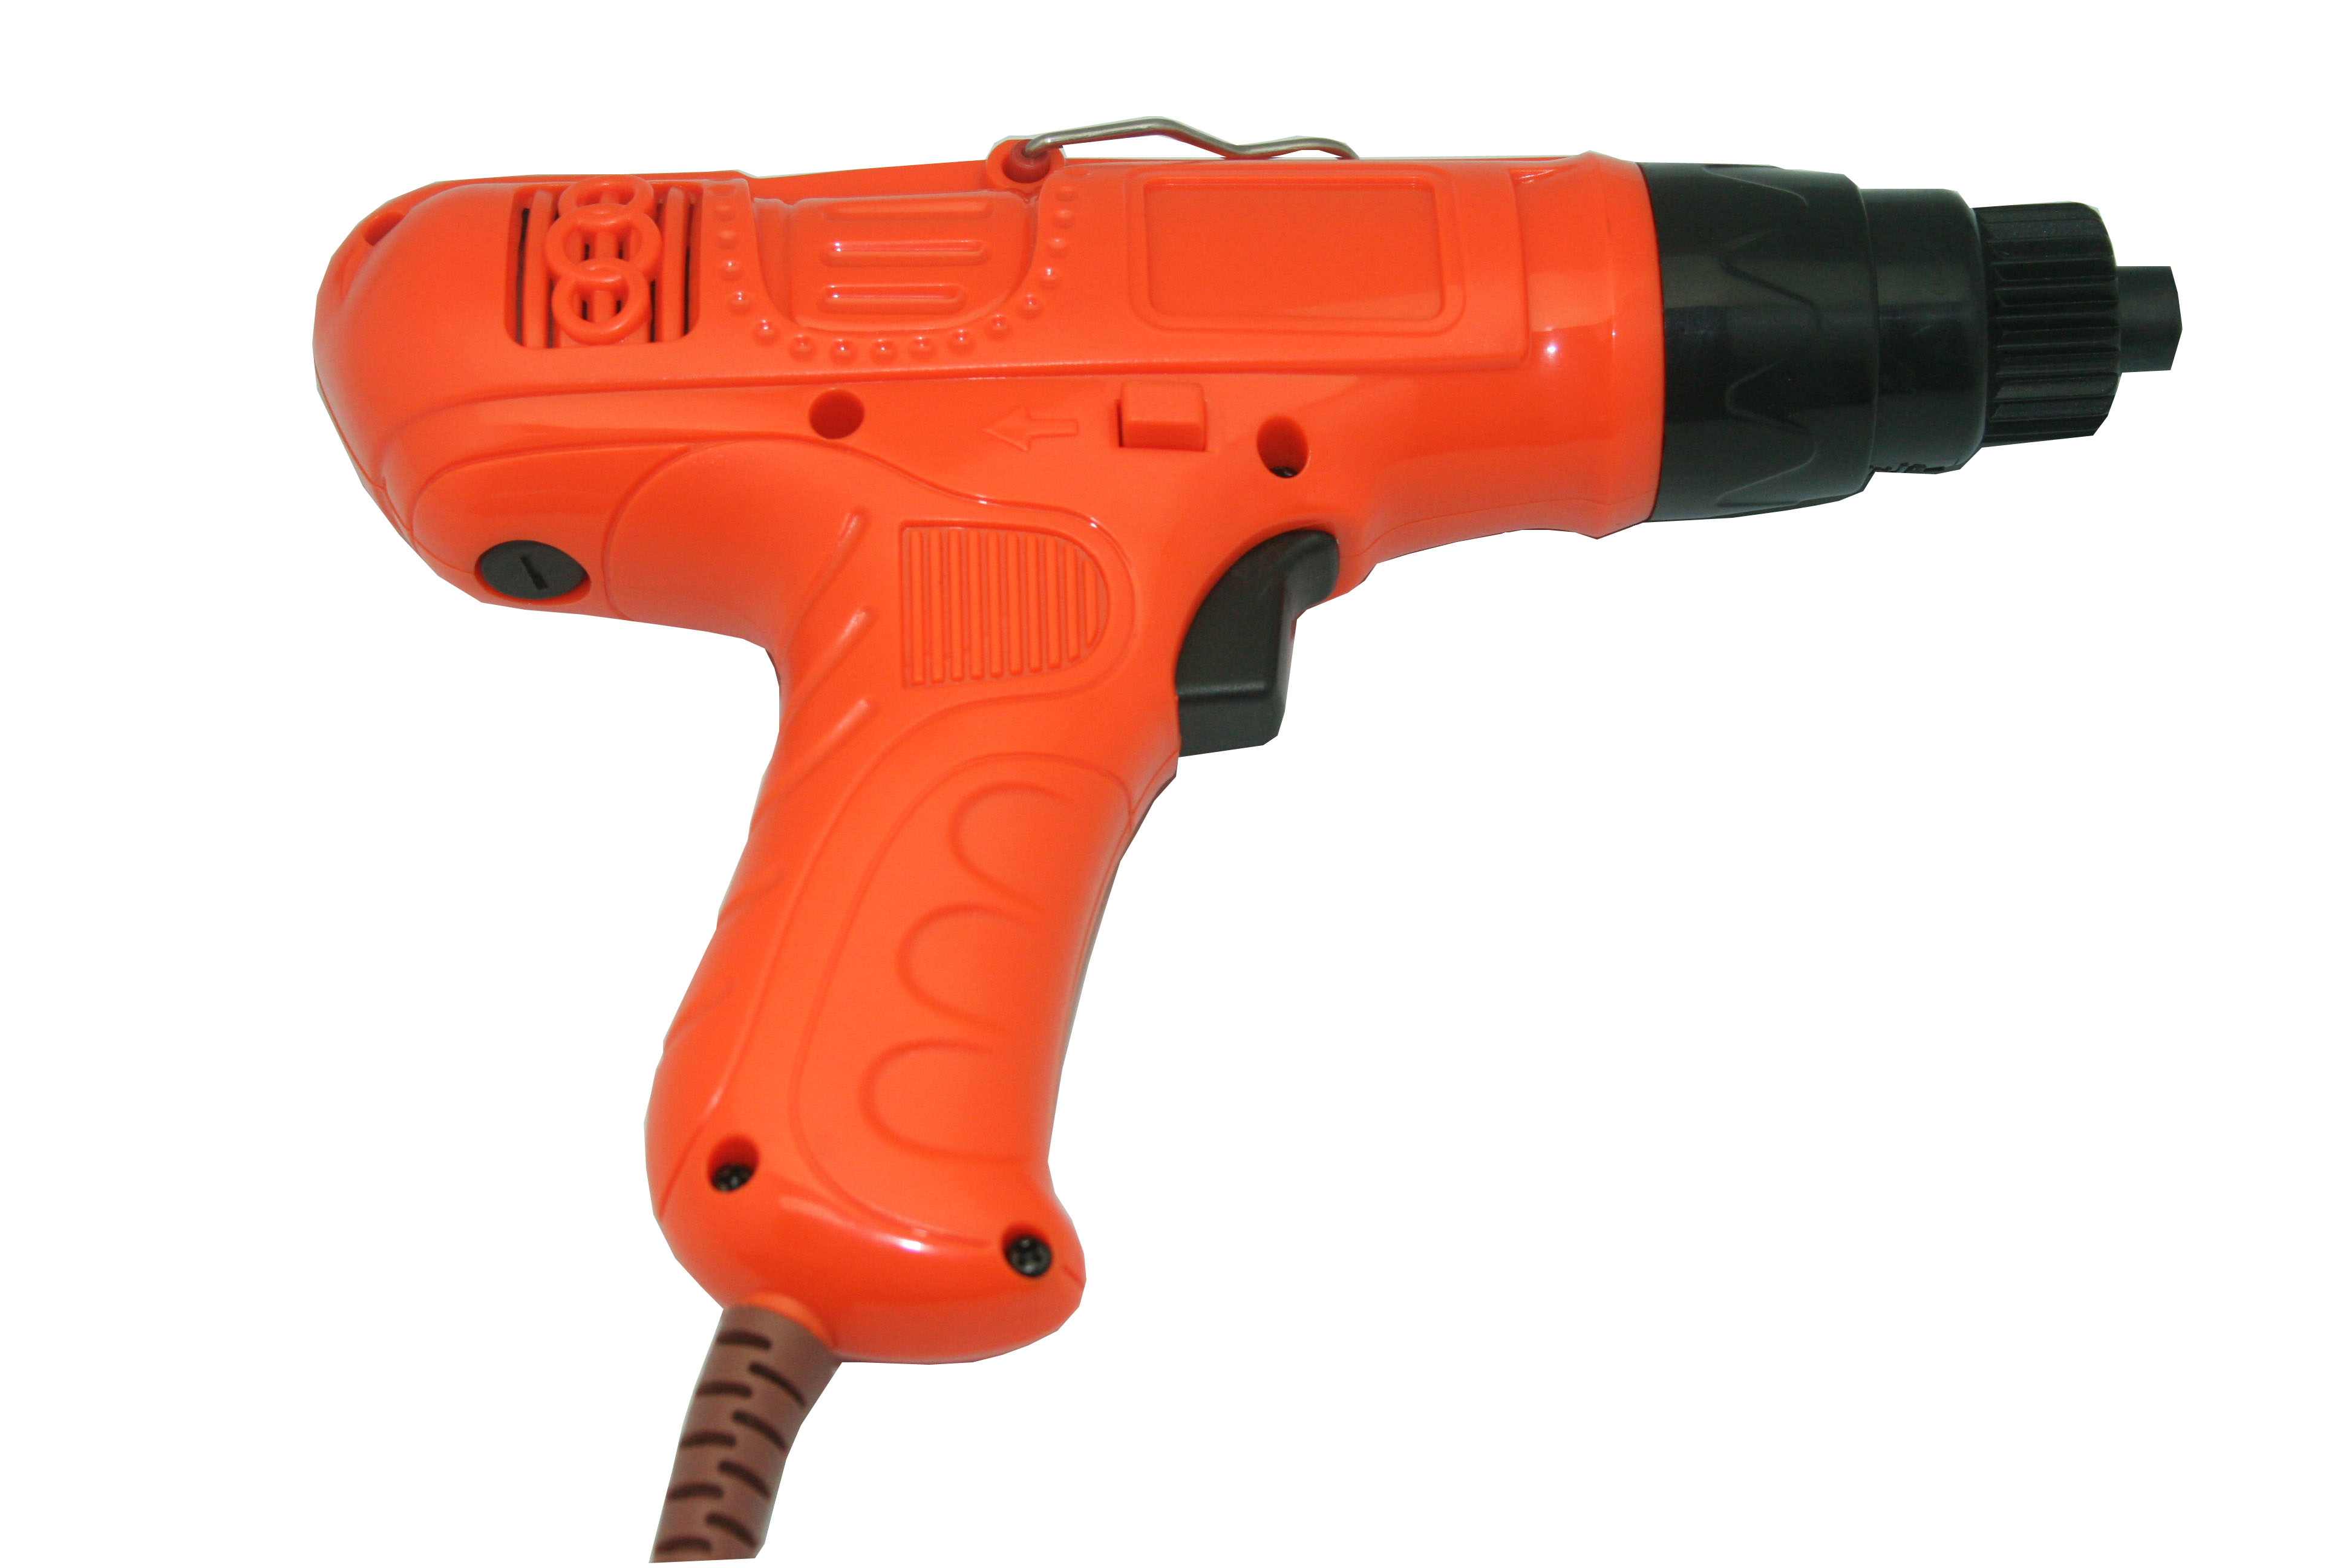 SJ-007/007A Electric Screwdriver